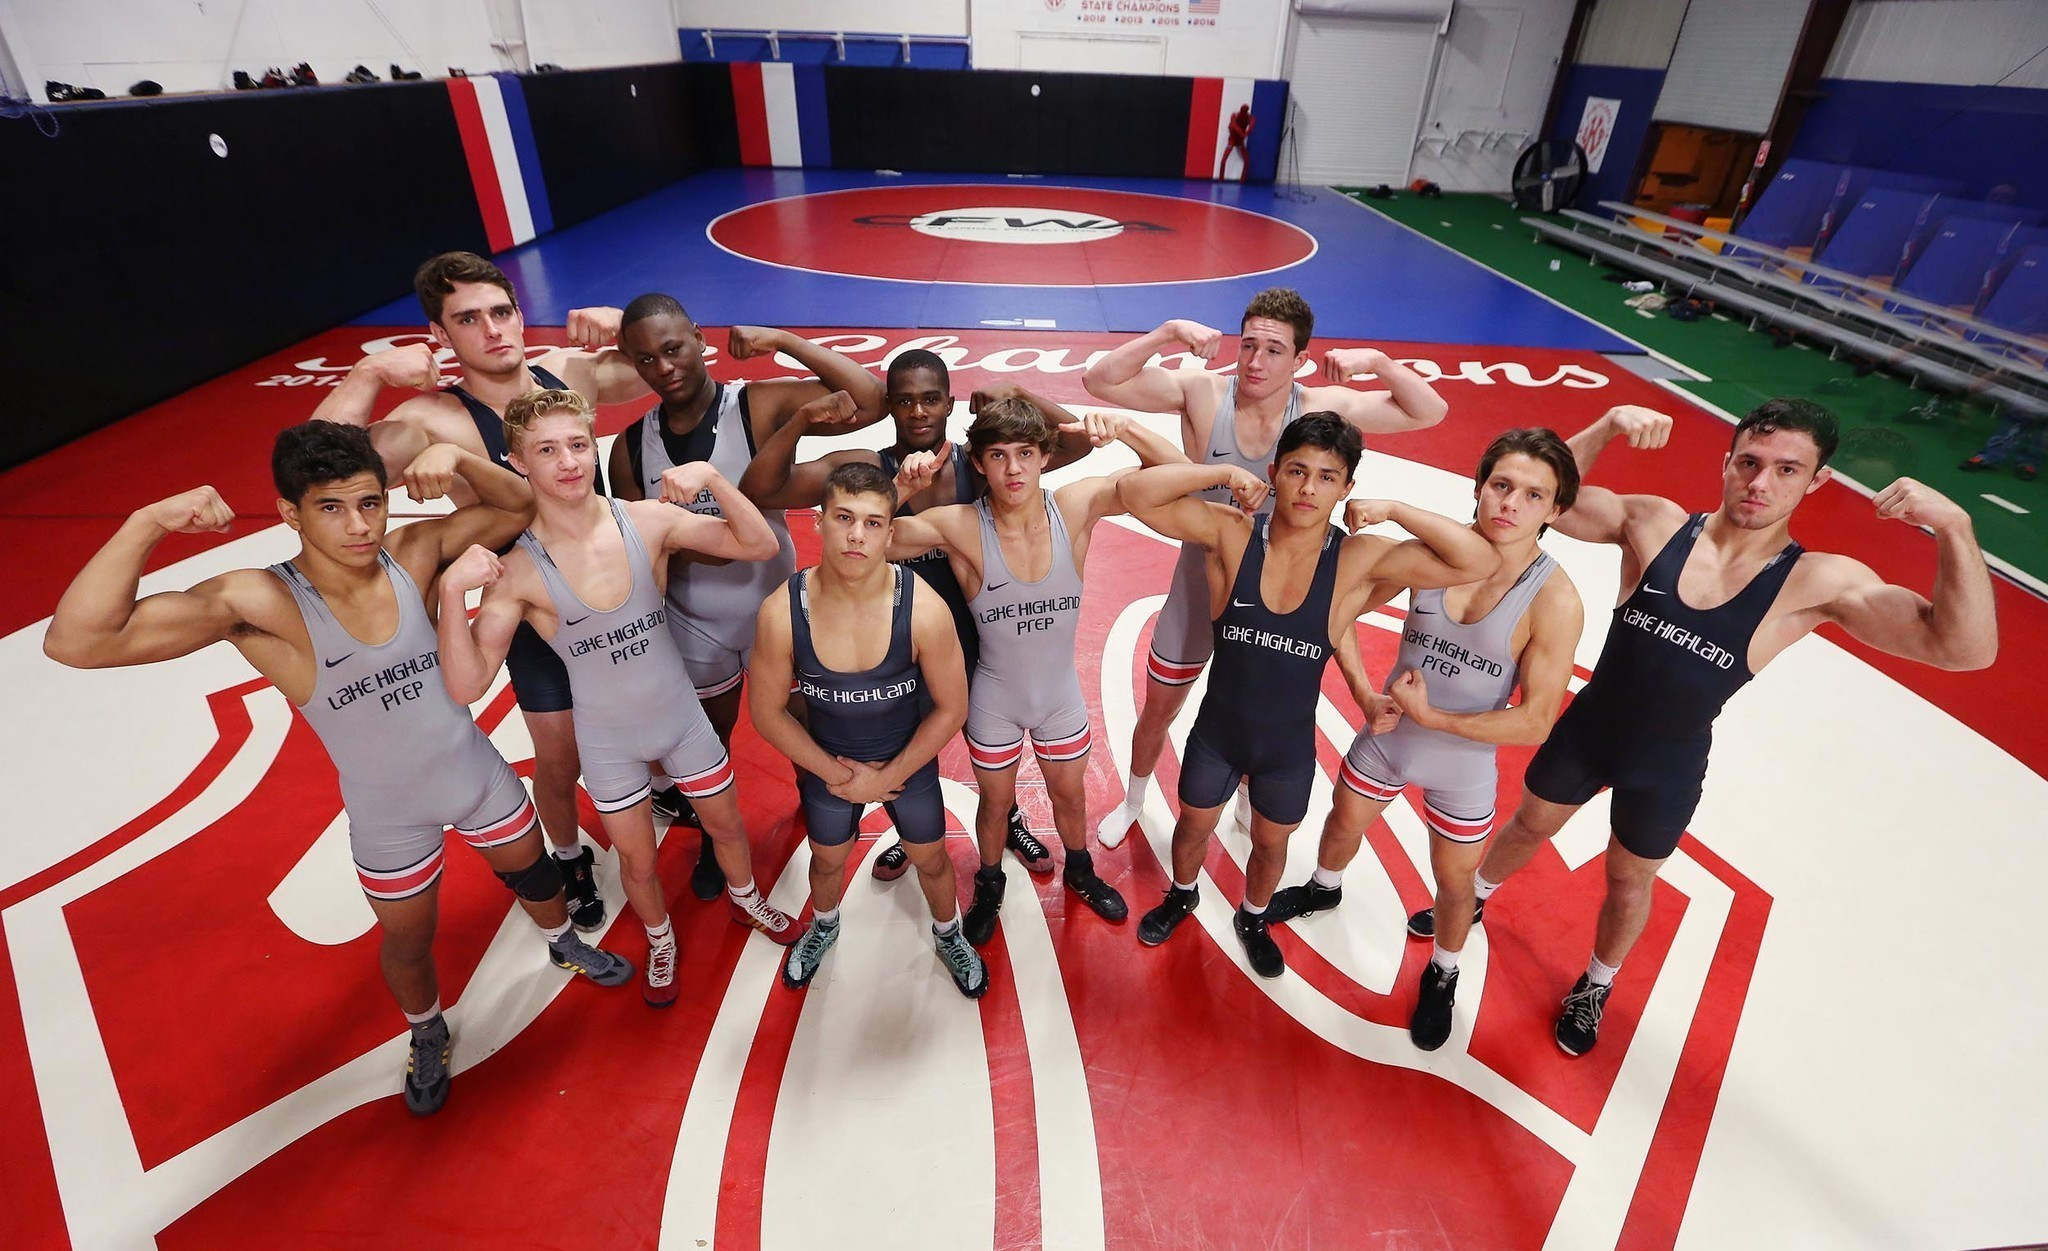 Reviews >> Pictures: 2017 Wrestling Media Day - Orlando Sentinel